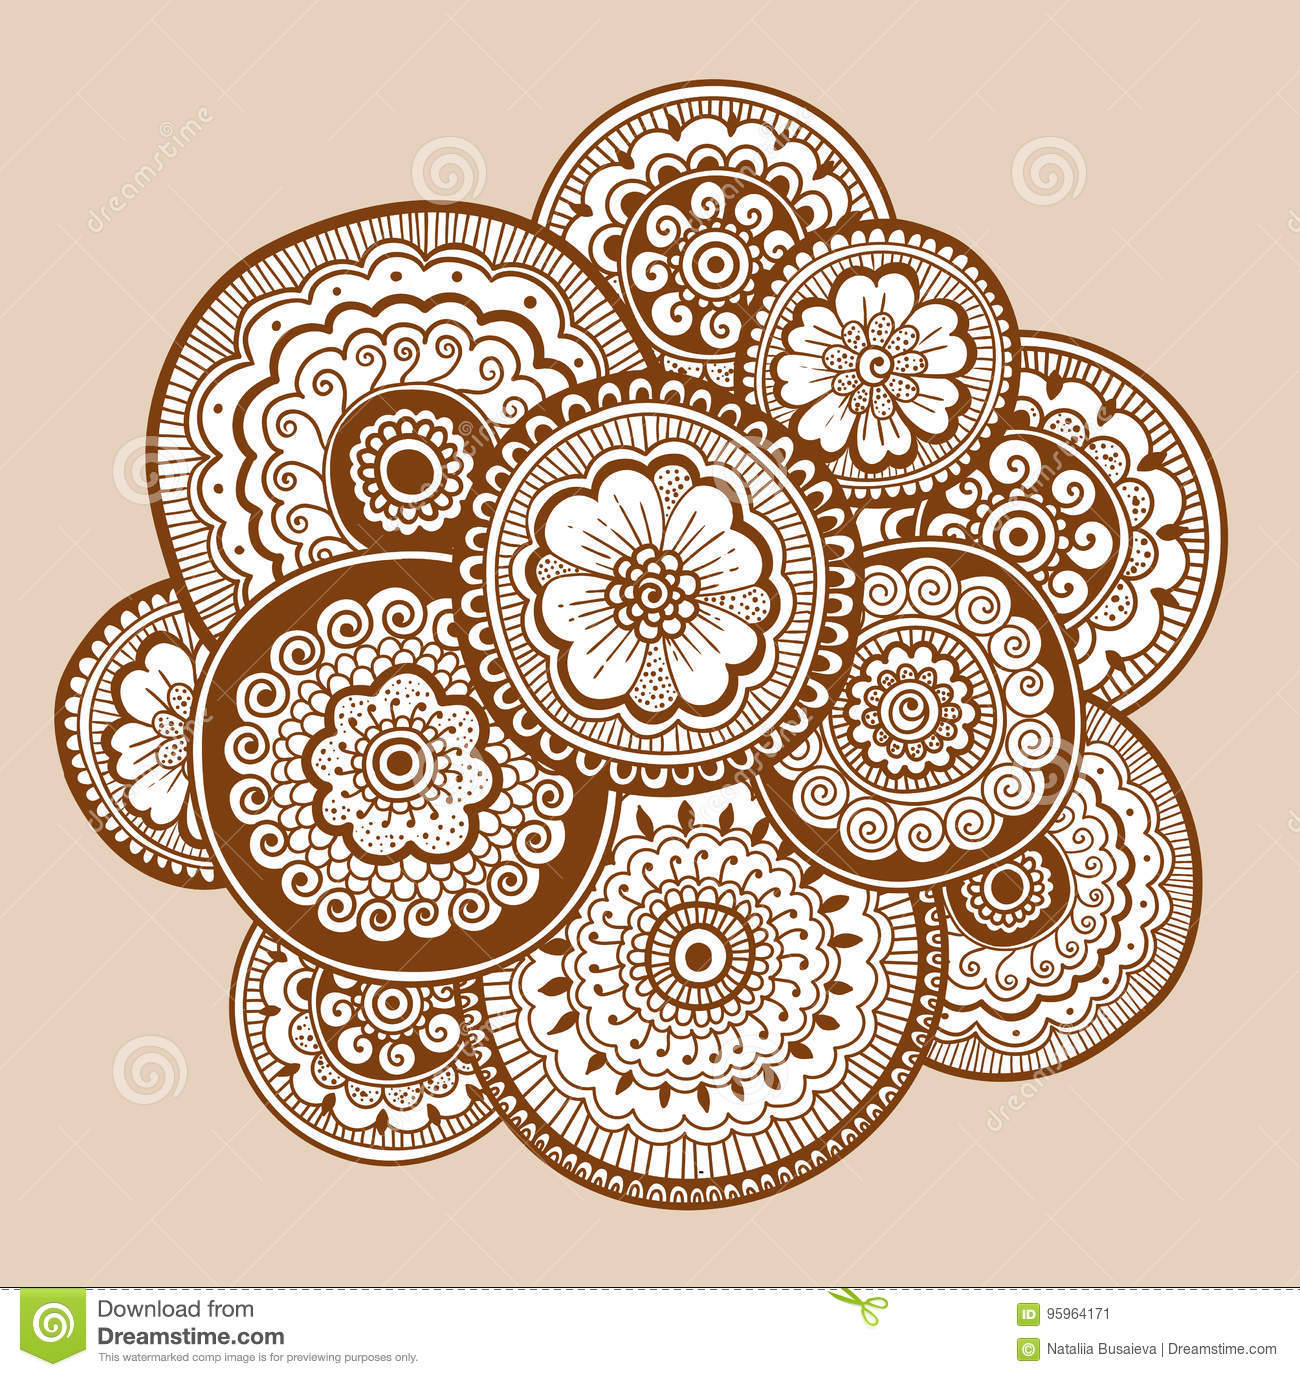 Ethnic Henna Mehndi Ornament  Indian Style  Beautiful Doodle Art